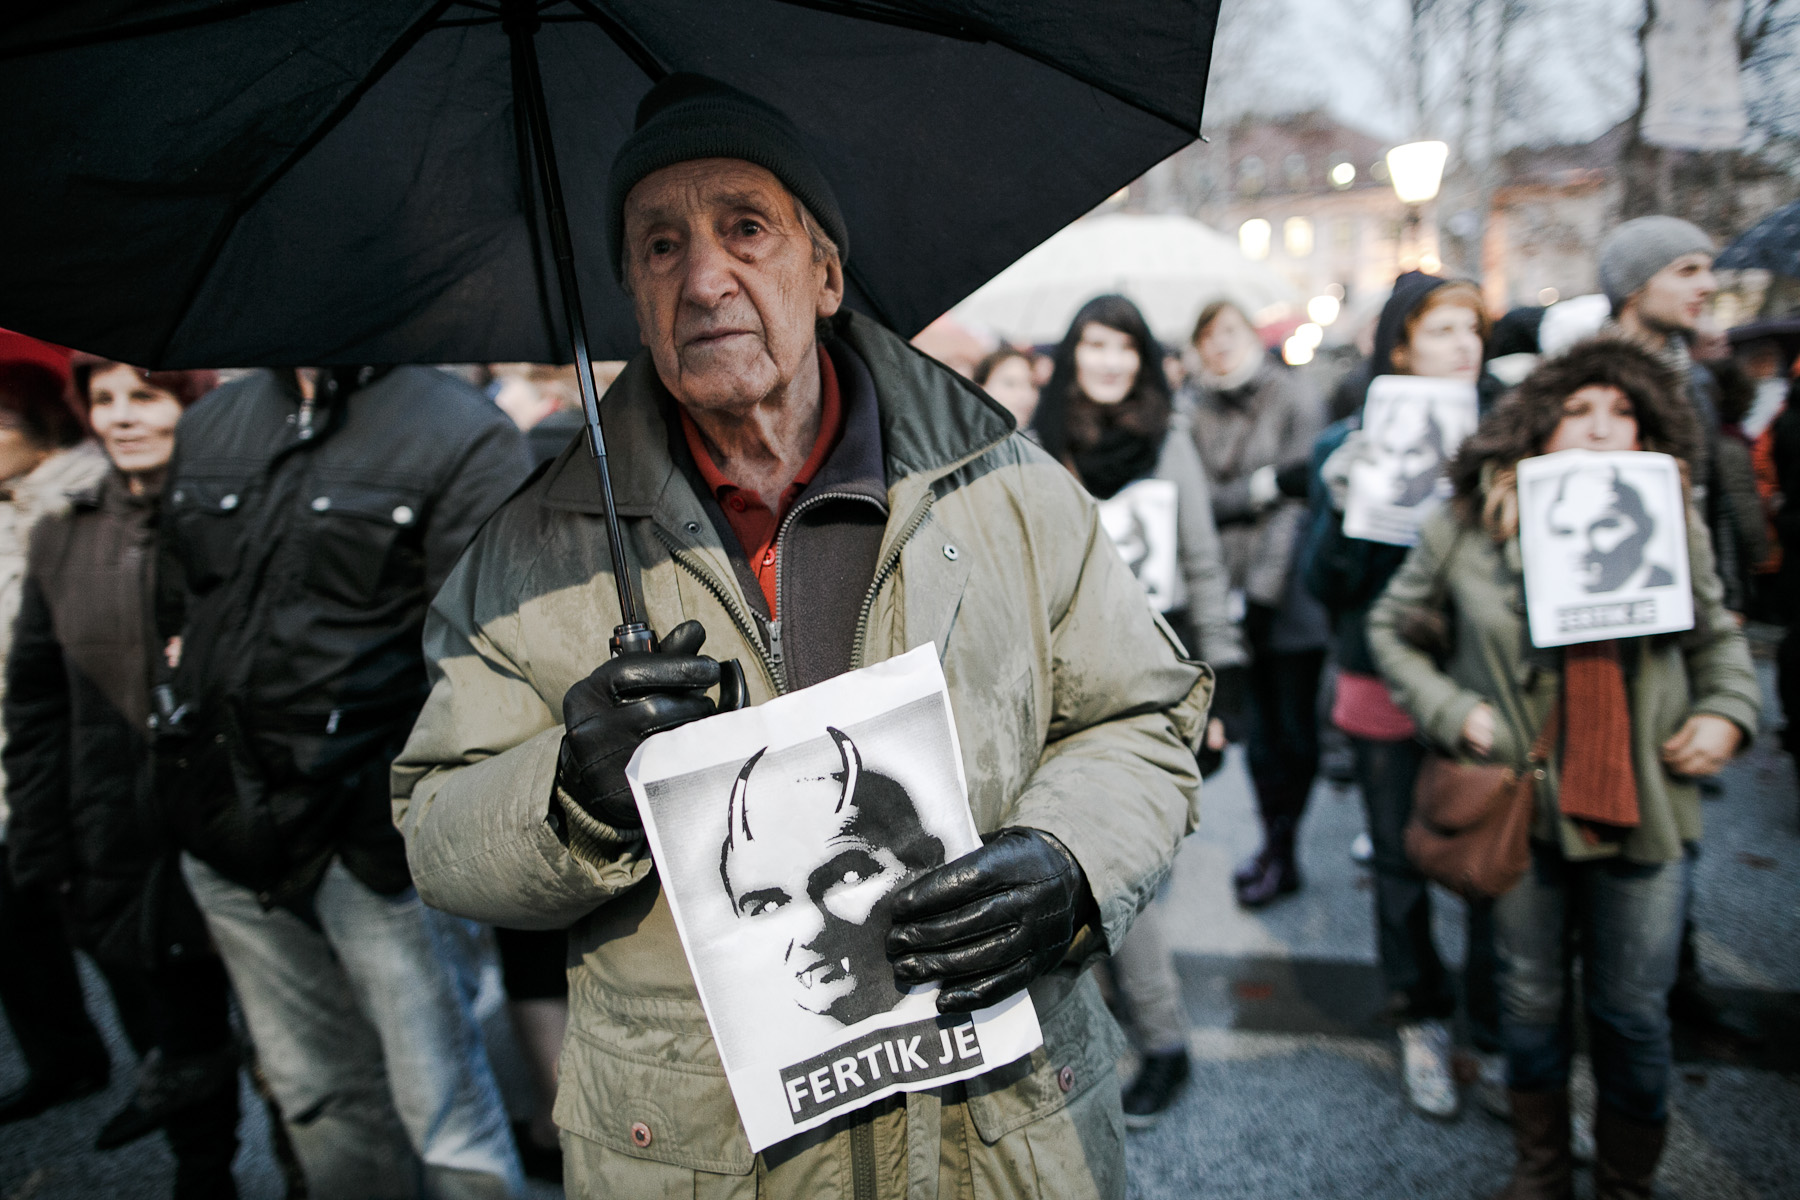 A protester carries a poster of prime minister Janez Jansa as the devil that reads {quote}He's done!{quote} during anti-government protests in Ljubljana, Slovenia.